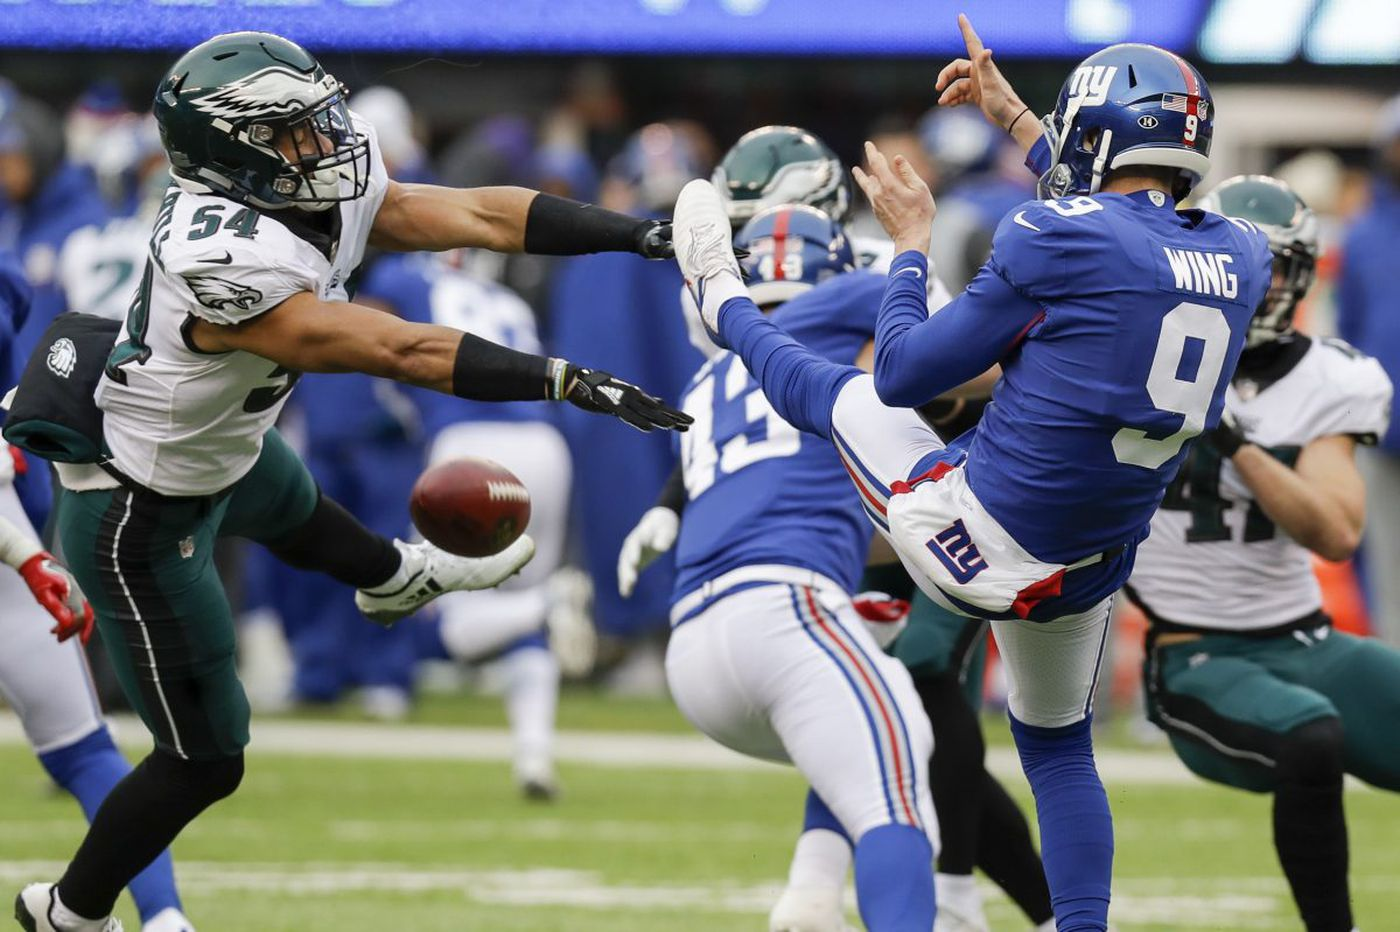 Eagles 34, Giants 29: Five quick observations on Nick Foles, Alshon Jeffery and the woeful defense